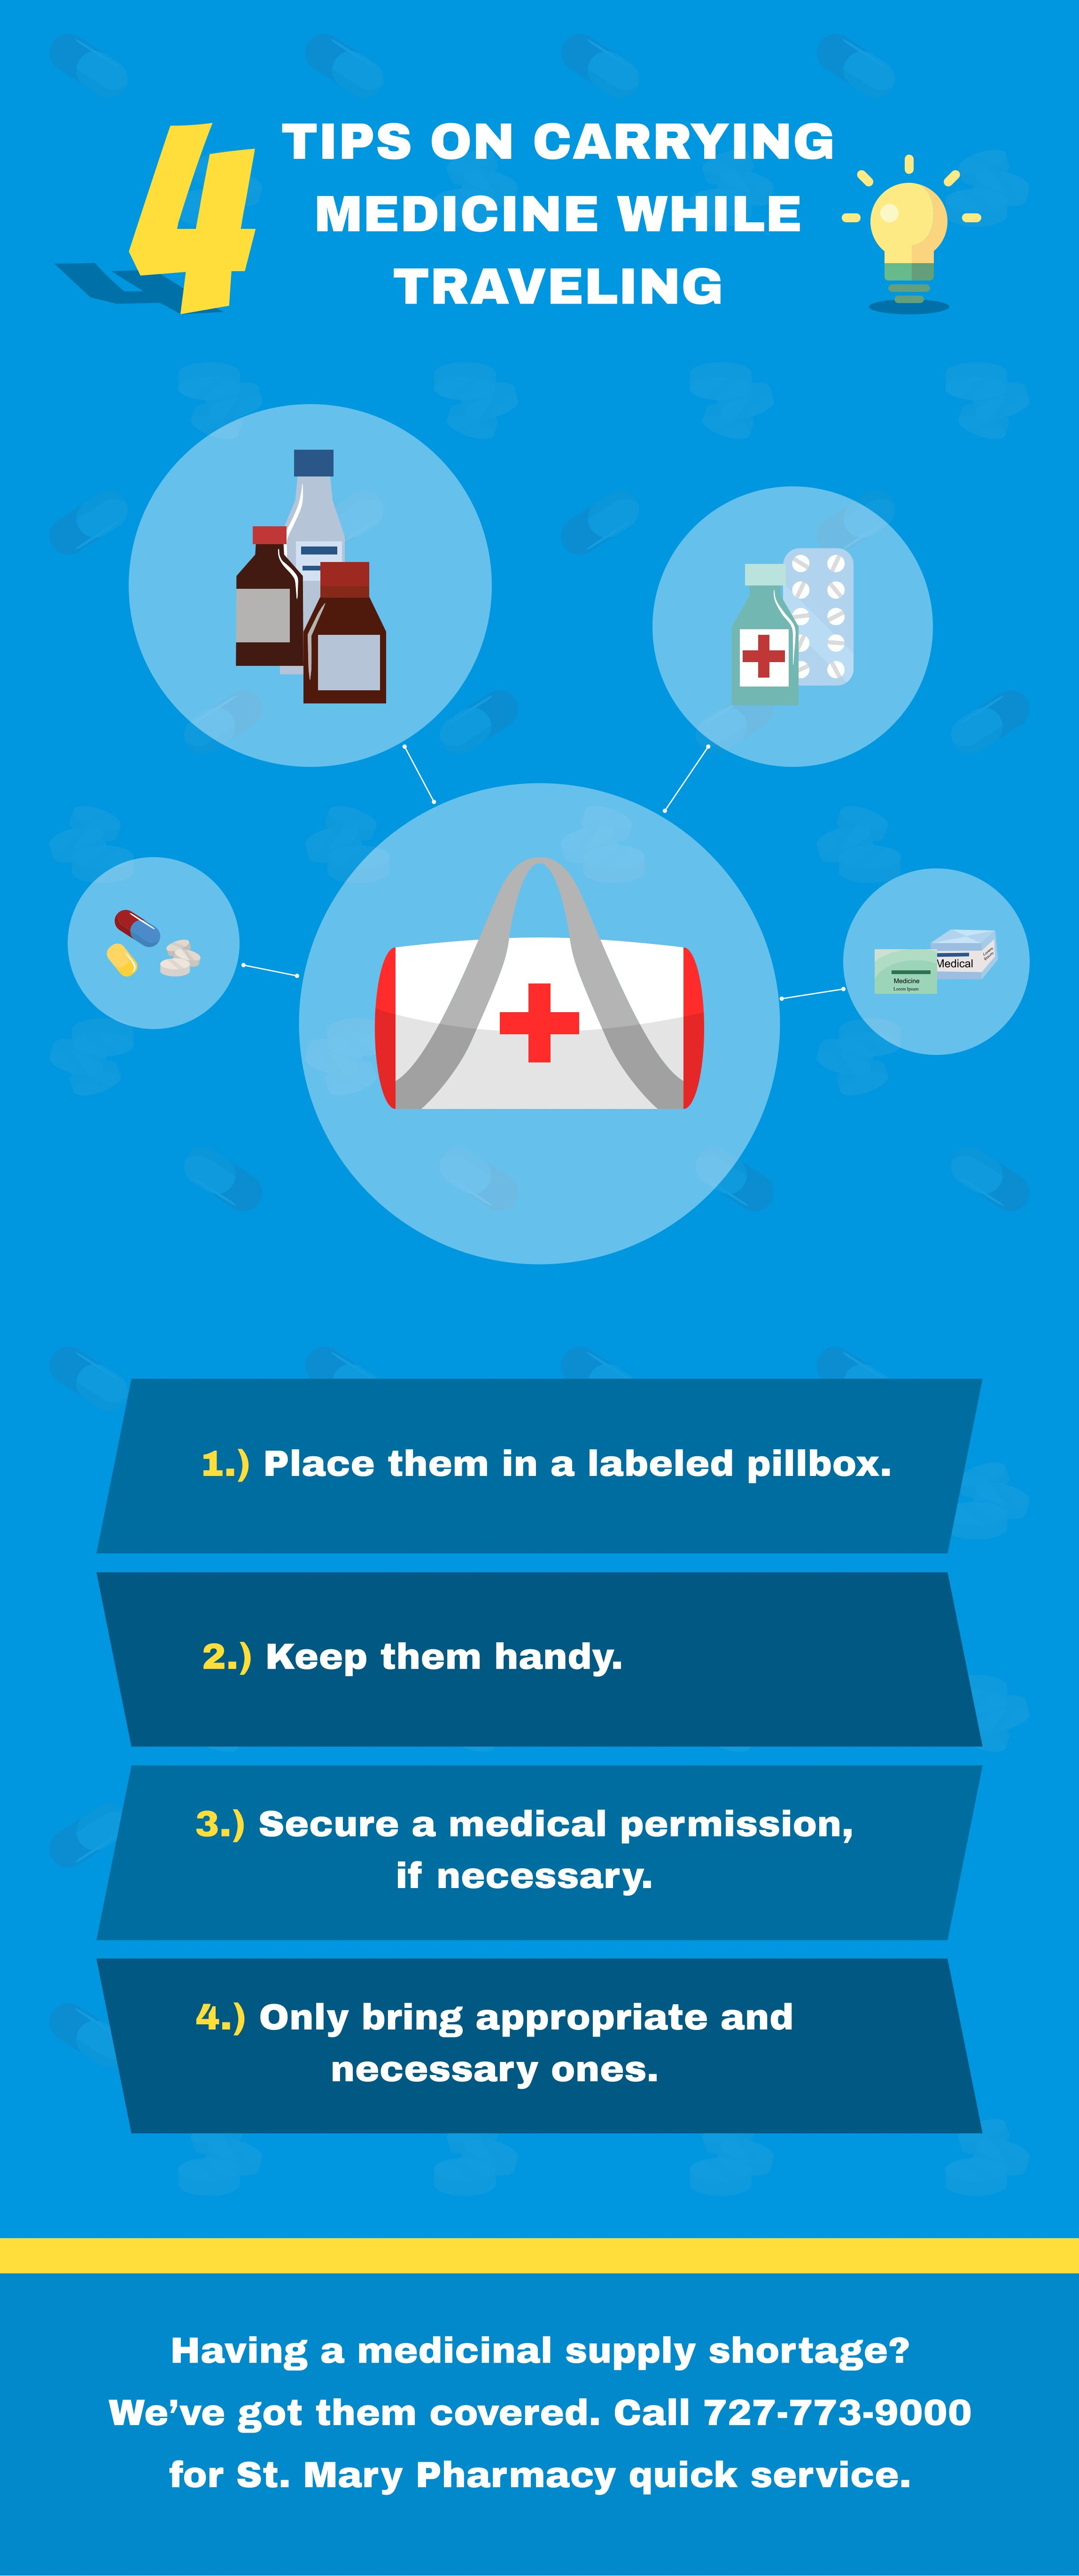 Learn more from your Pharmacy in Palm Harbor visit www